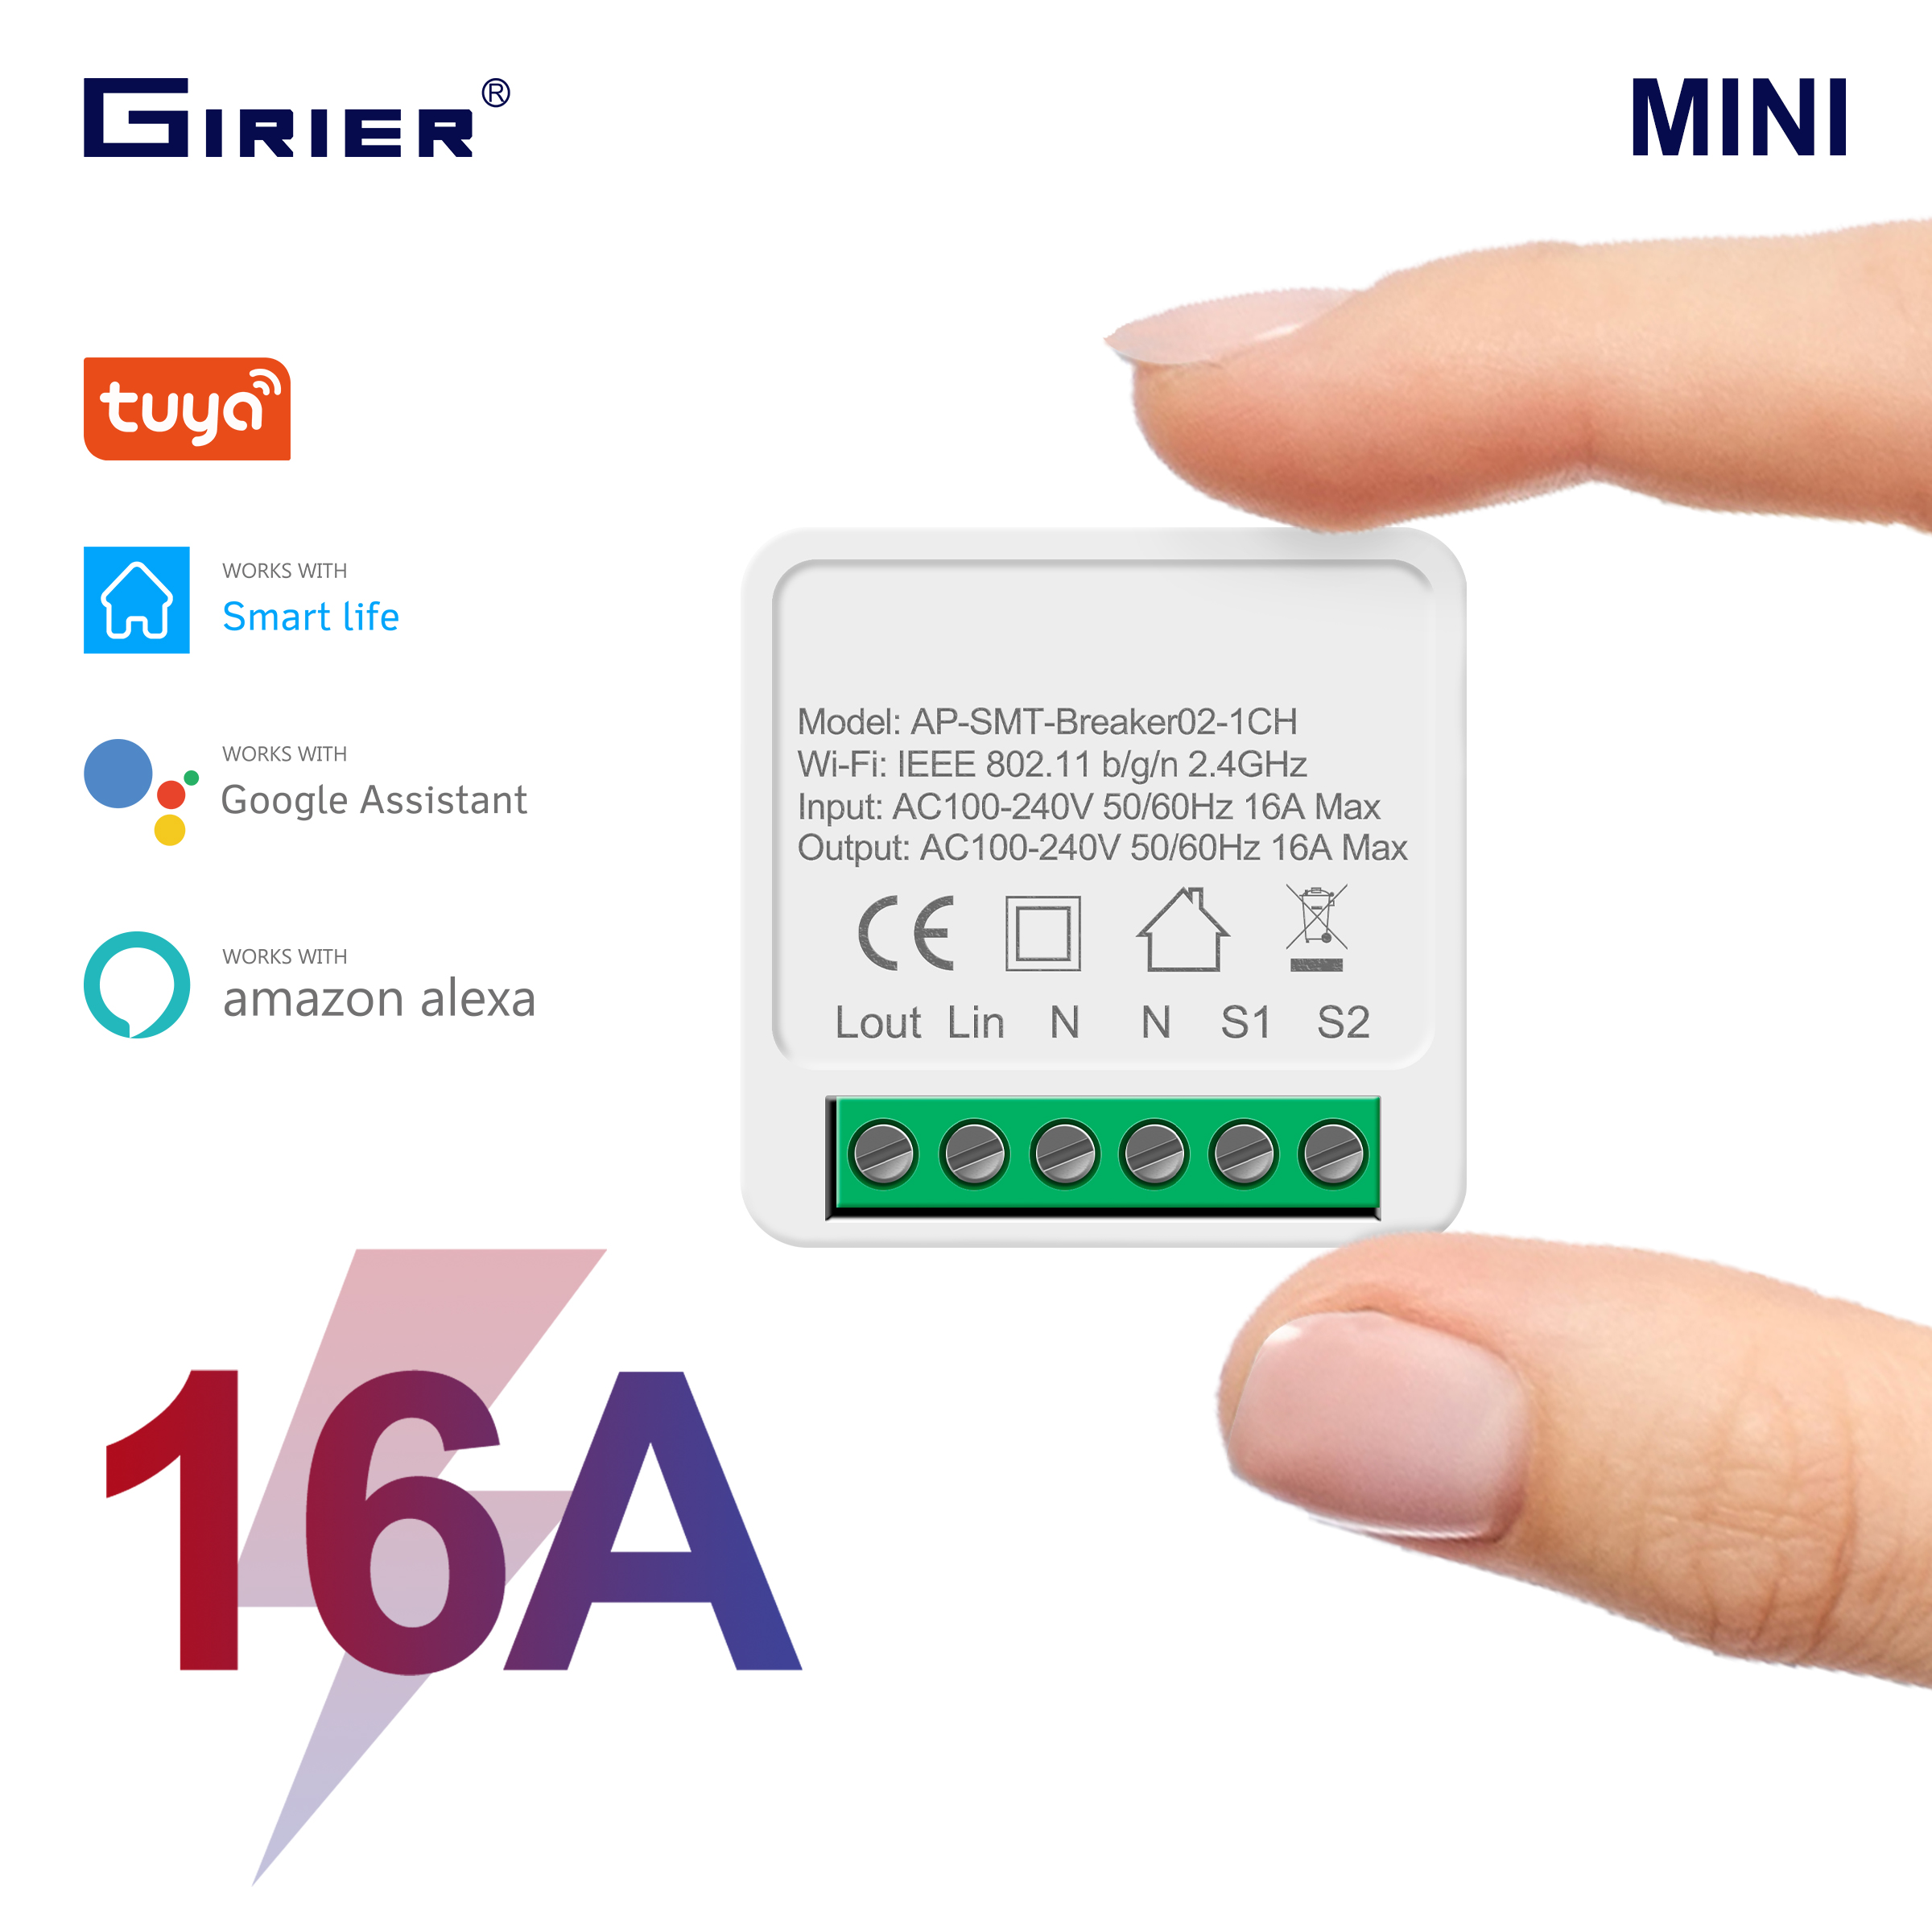 16A Mini Smart Wifi DIY Switch Supports 2 Way Control Smart Home Automation Module Works with Alexa Google Home Smart Life App